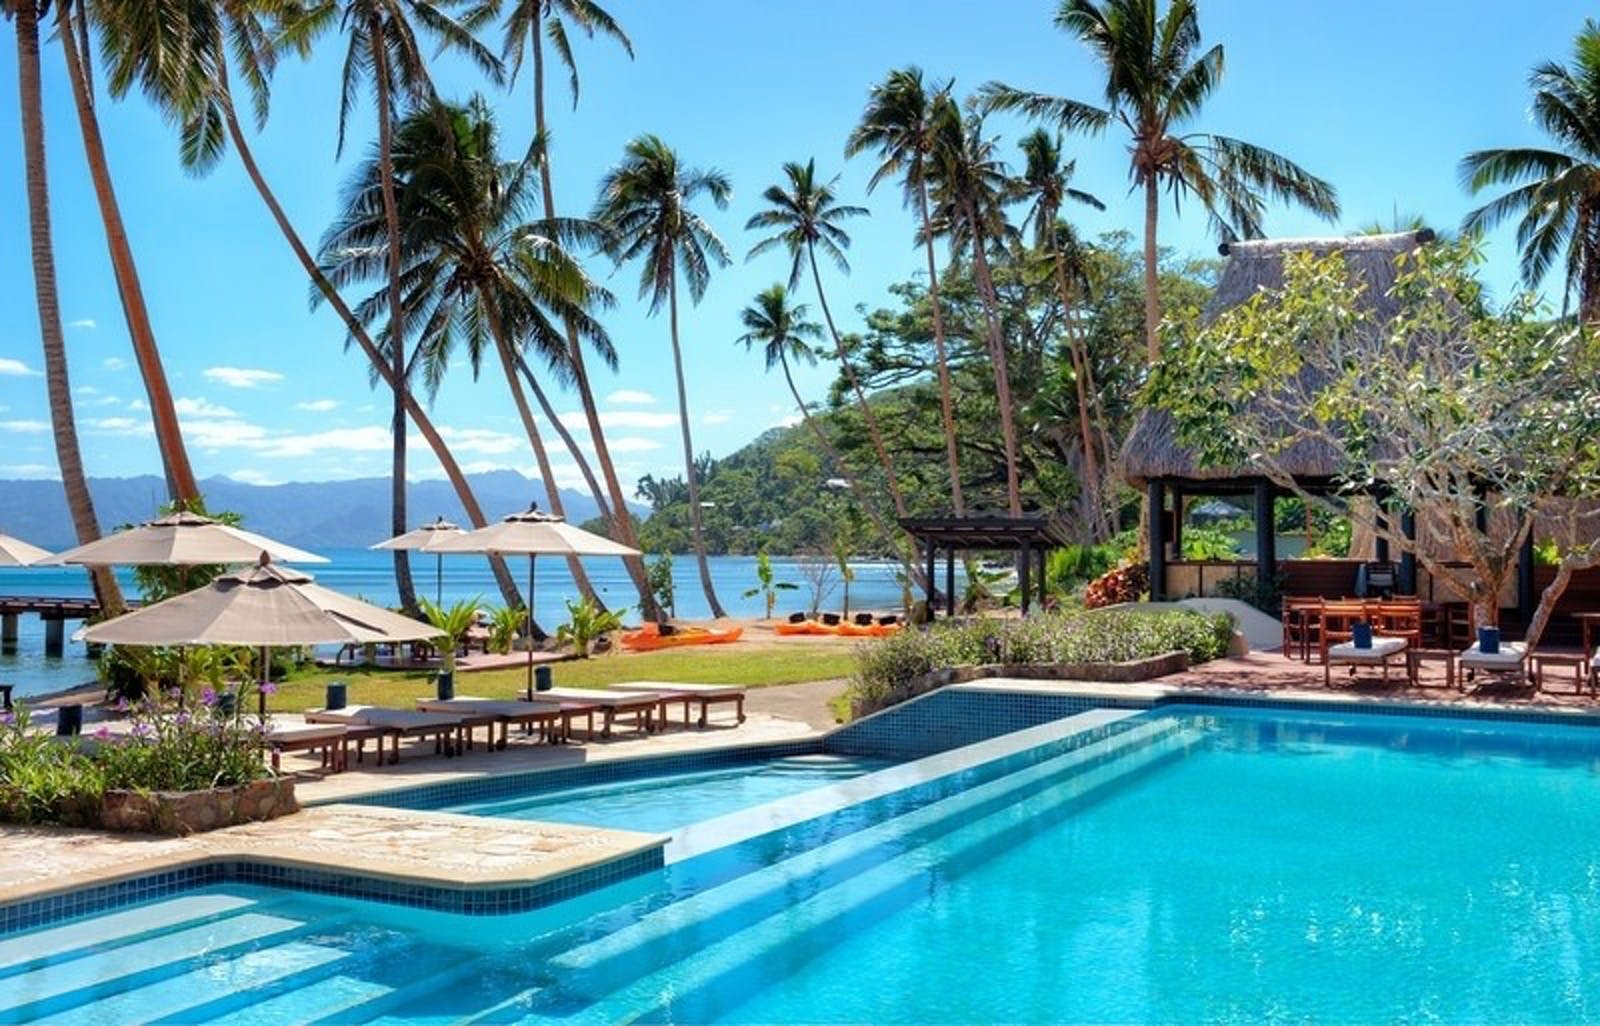 Pool View at Jean-Michel Cousteau Resort, Fiji